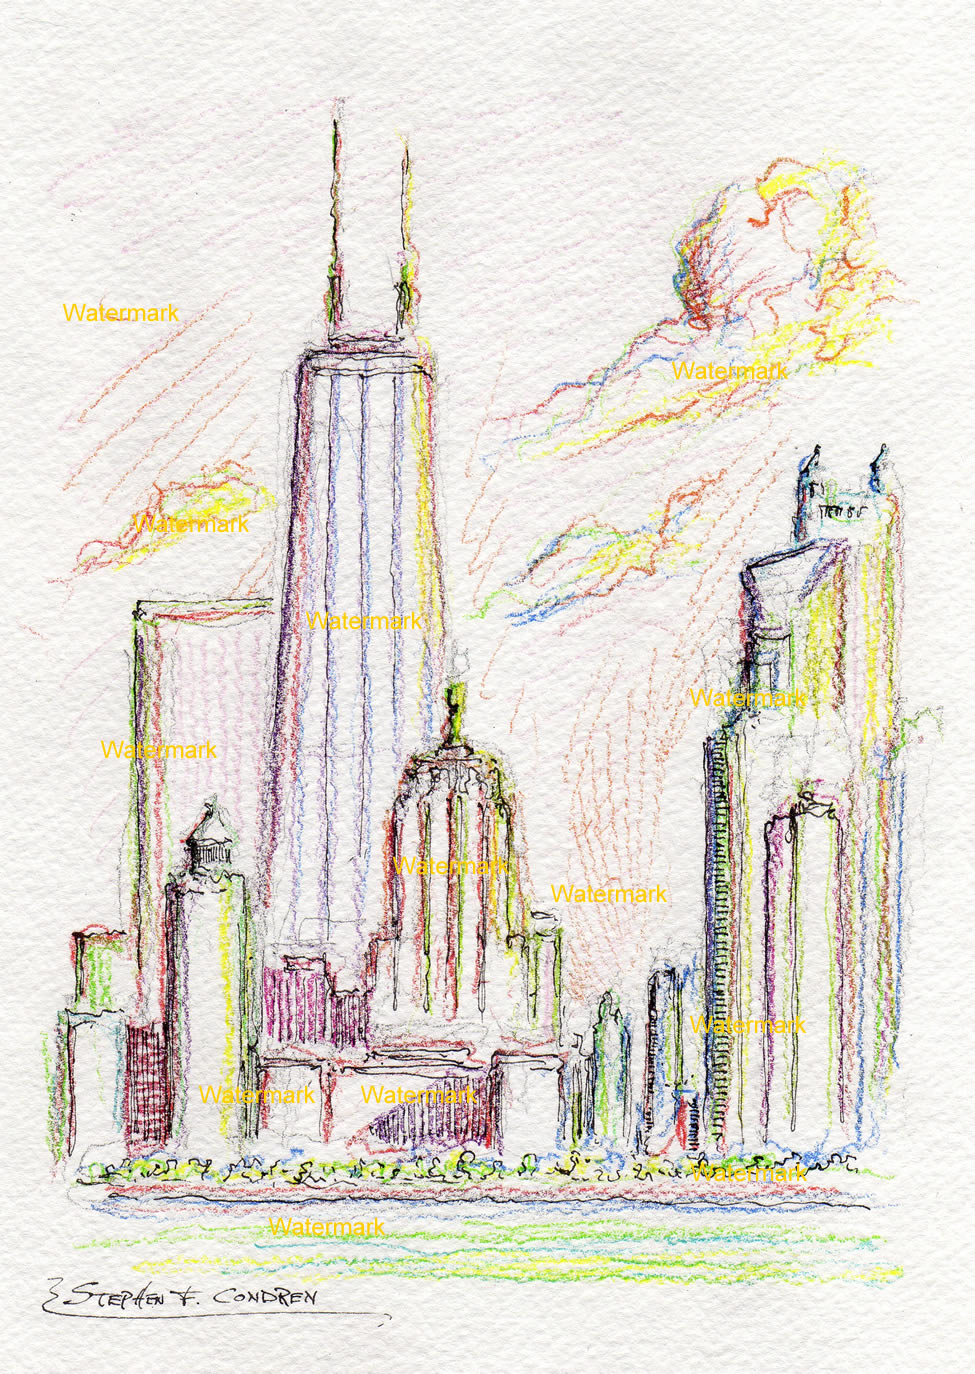 Chicago skyline color pencil drawing with John Hancock Center.